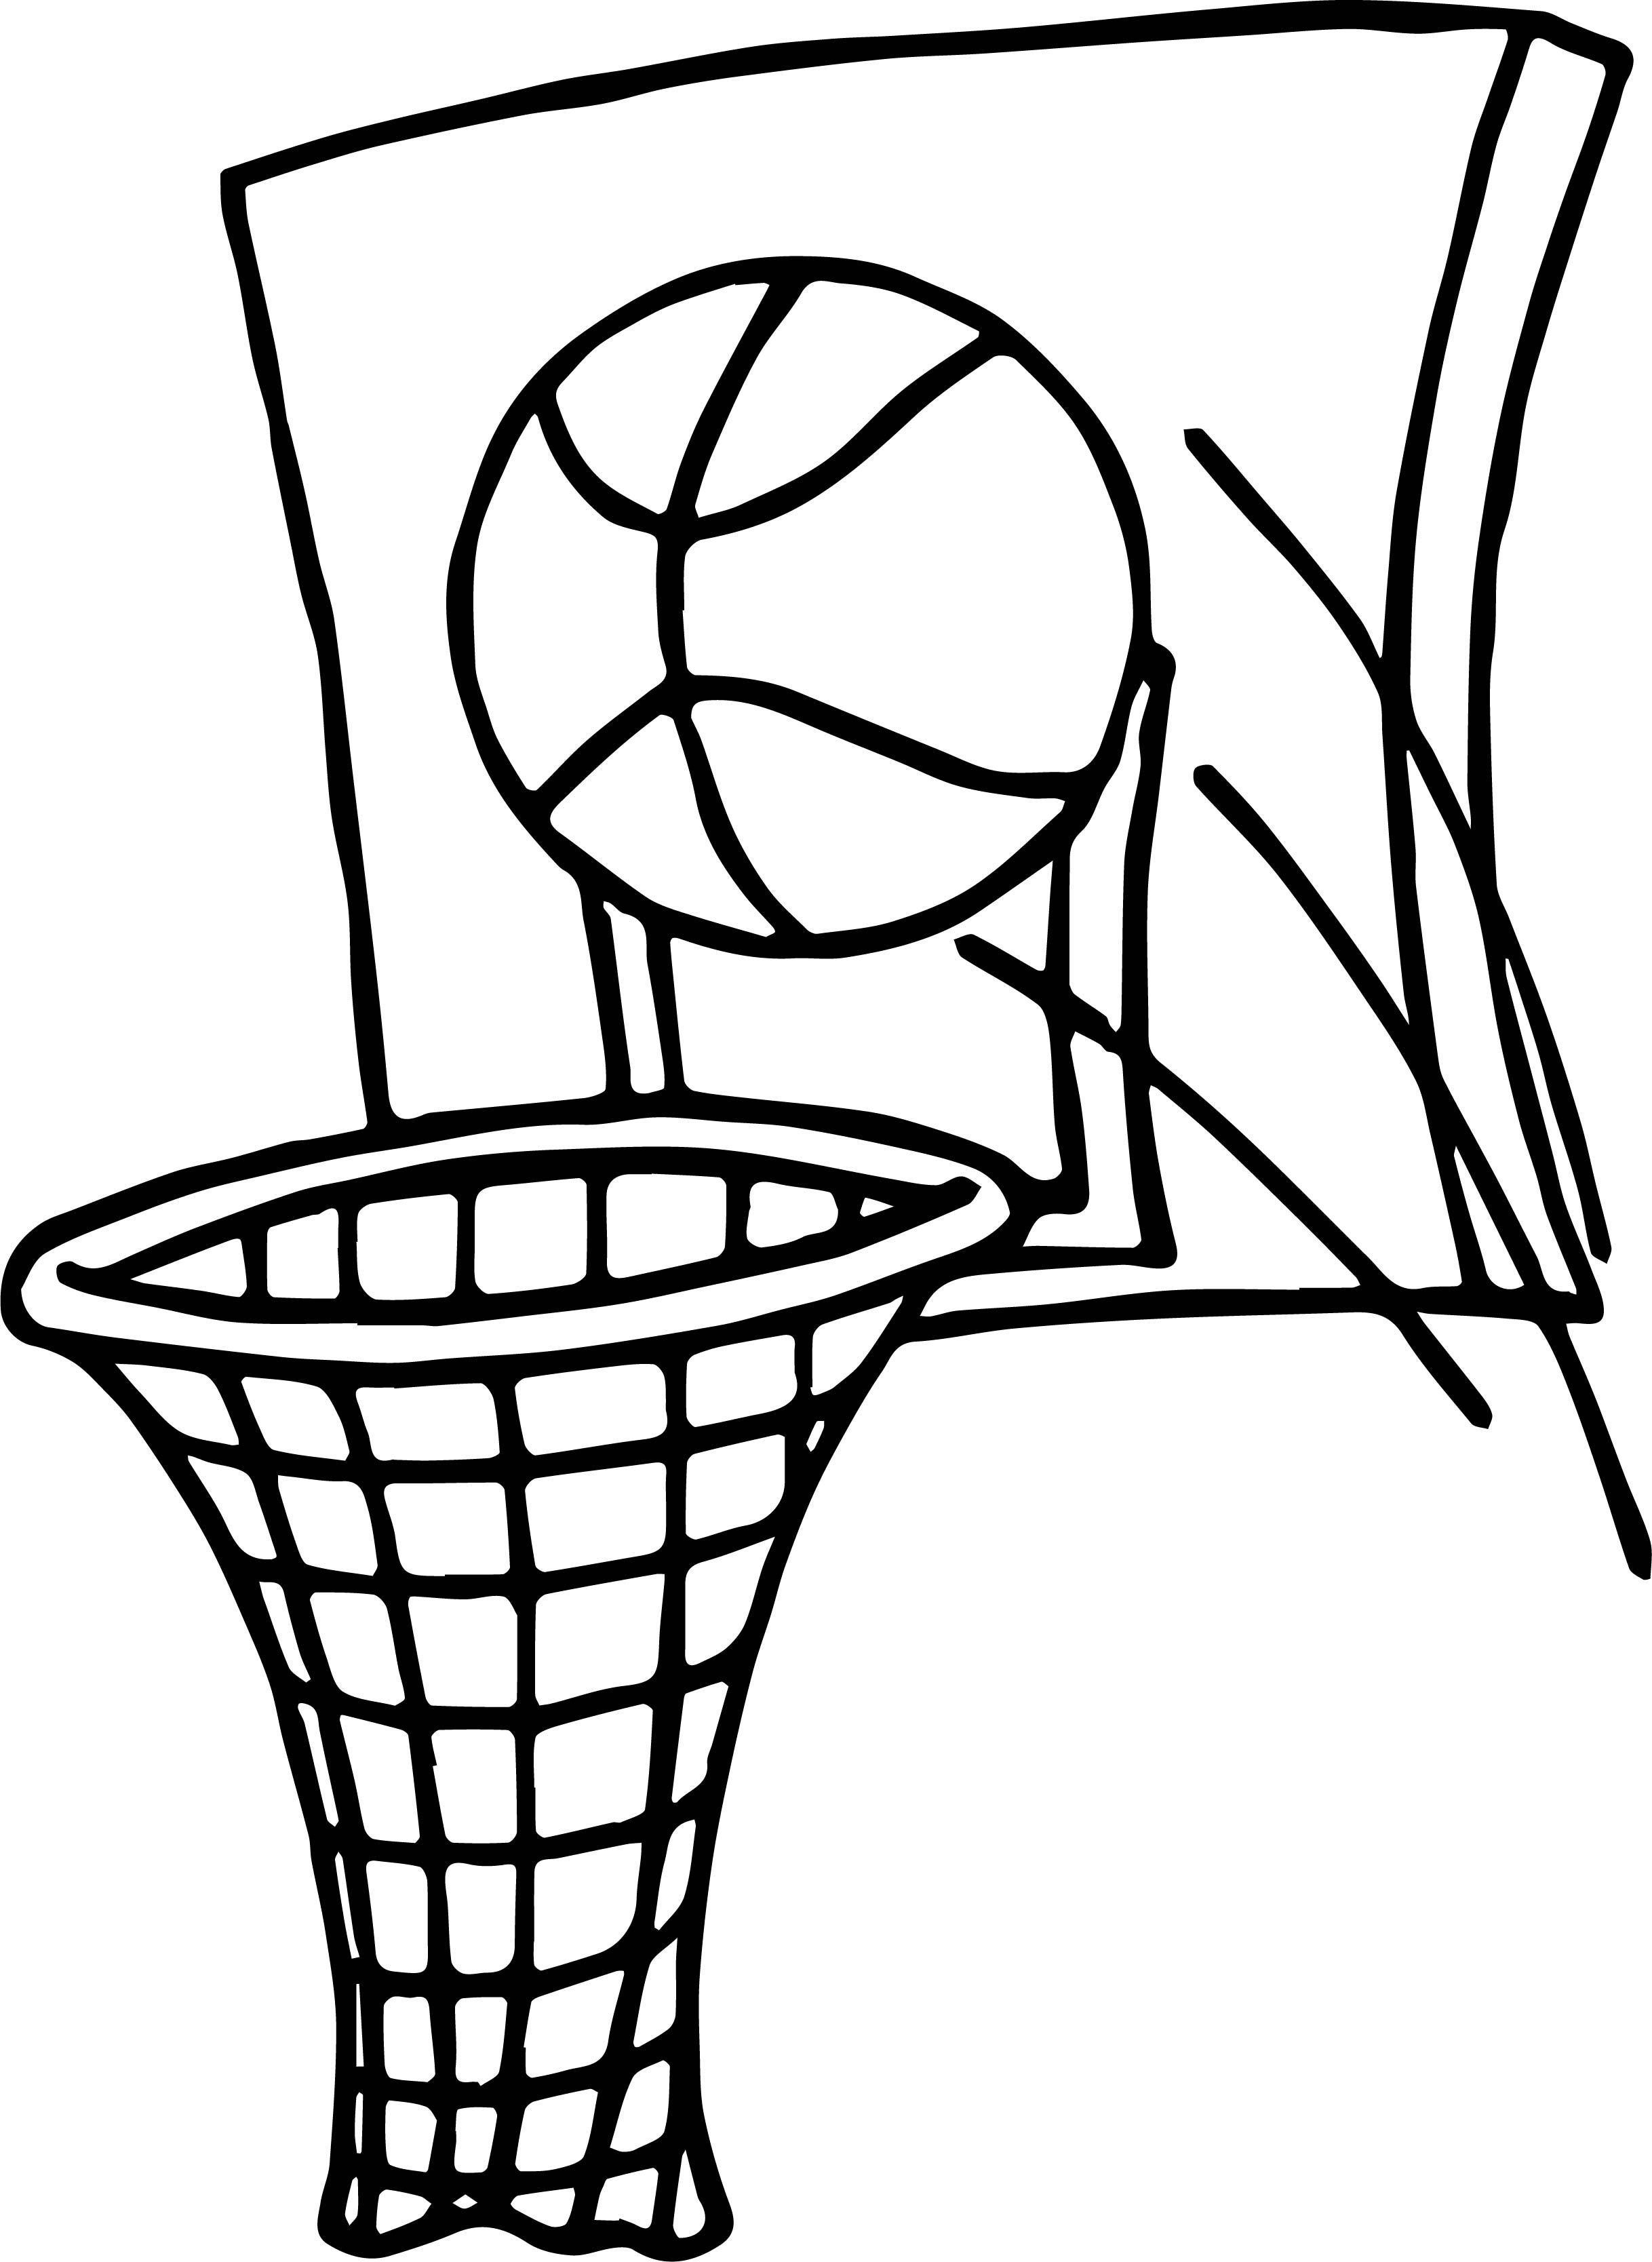 Pin By Wecoloringpage Coloring Pages On Basketball In 2020 Basketball Drawings Sports Coloring Pages Coloring Pages For Kids